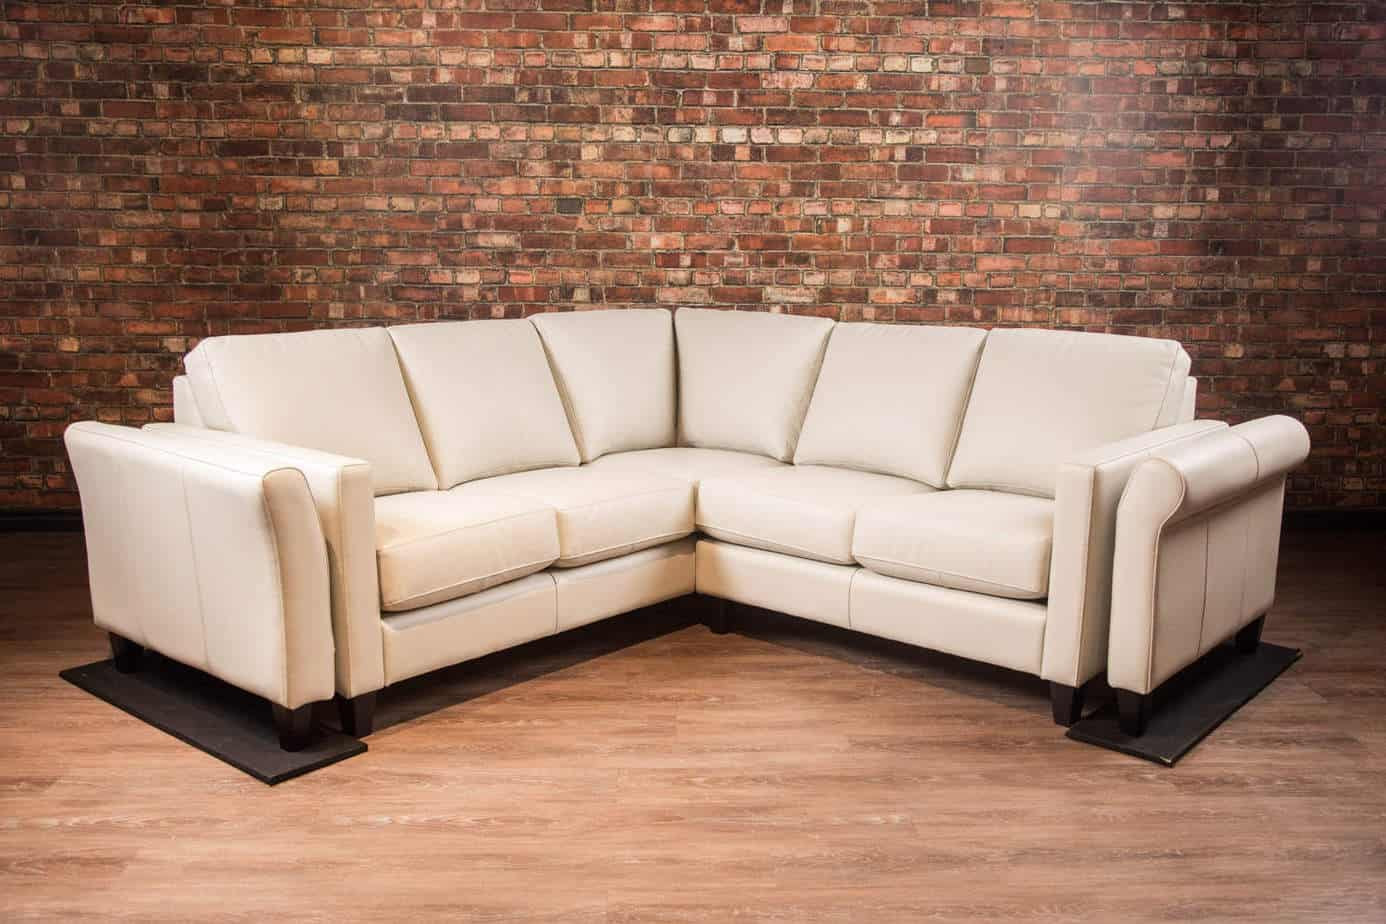 furniture canada the classic leather sectional condo edition canada s